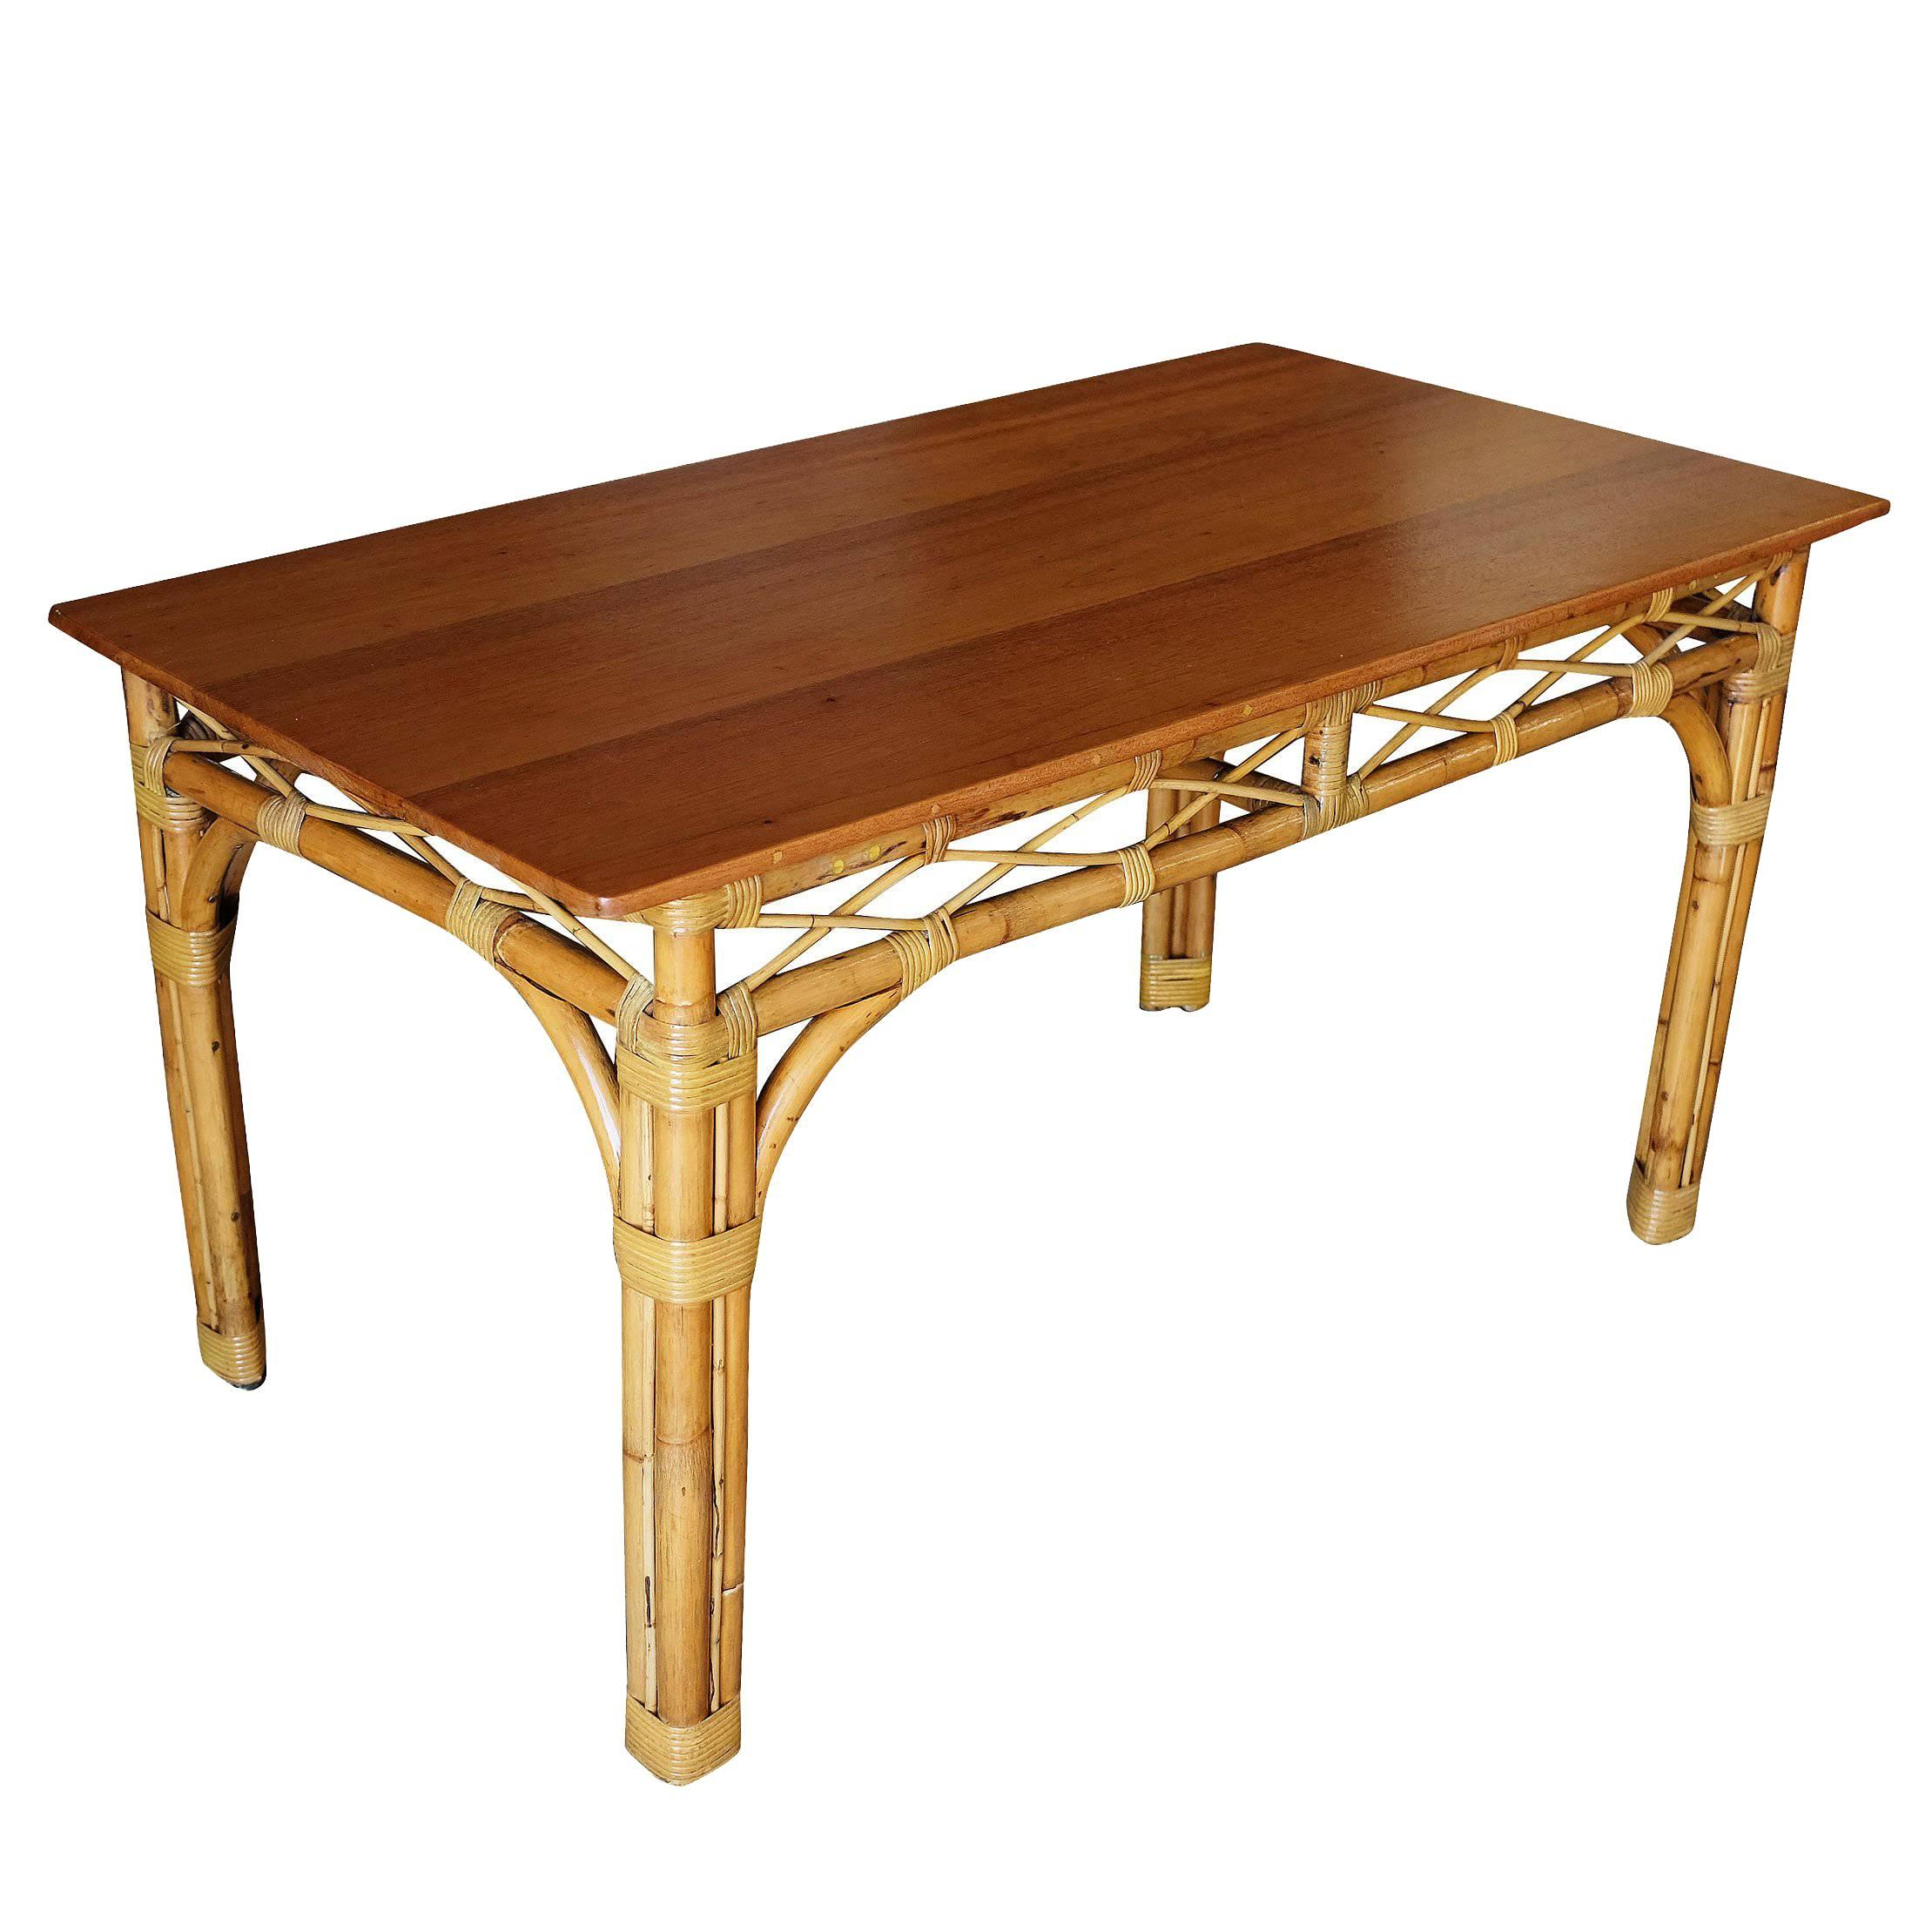 Restored Large Blonde Rectangle Rattan Dining Table With Mahogany Top For  Sale At 1stdibs